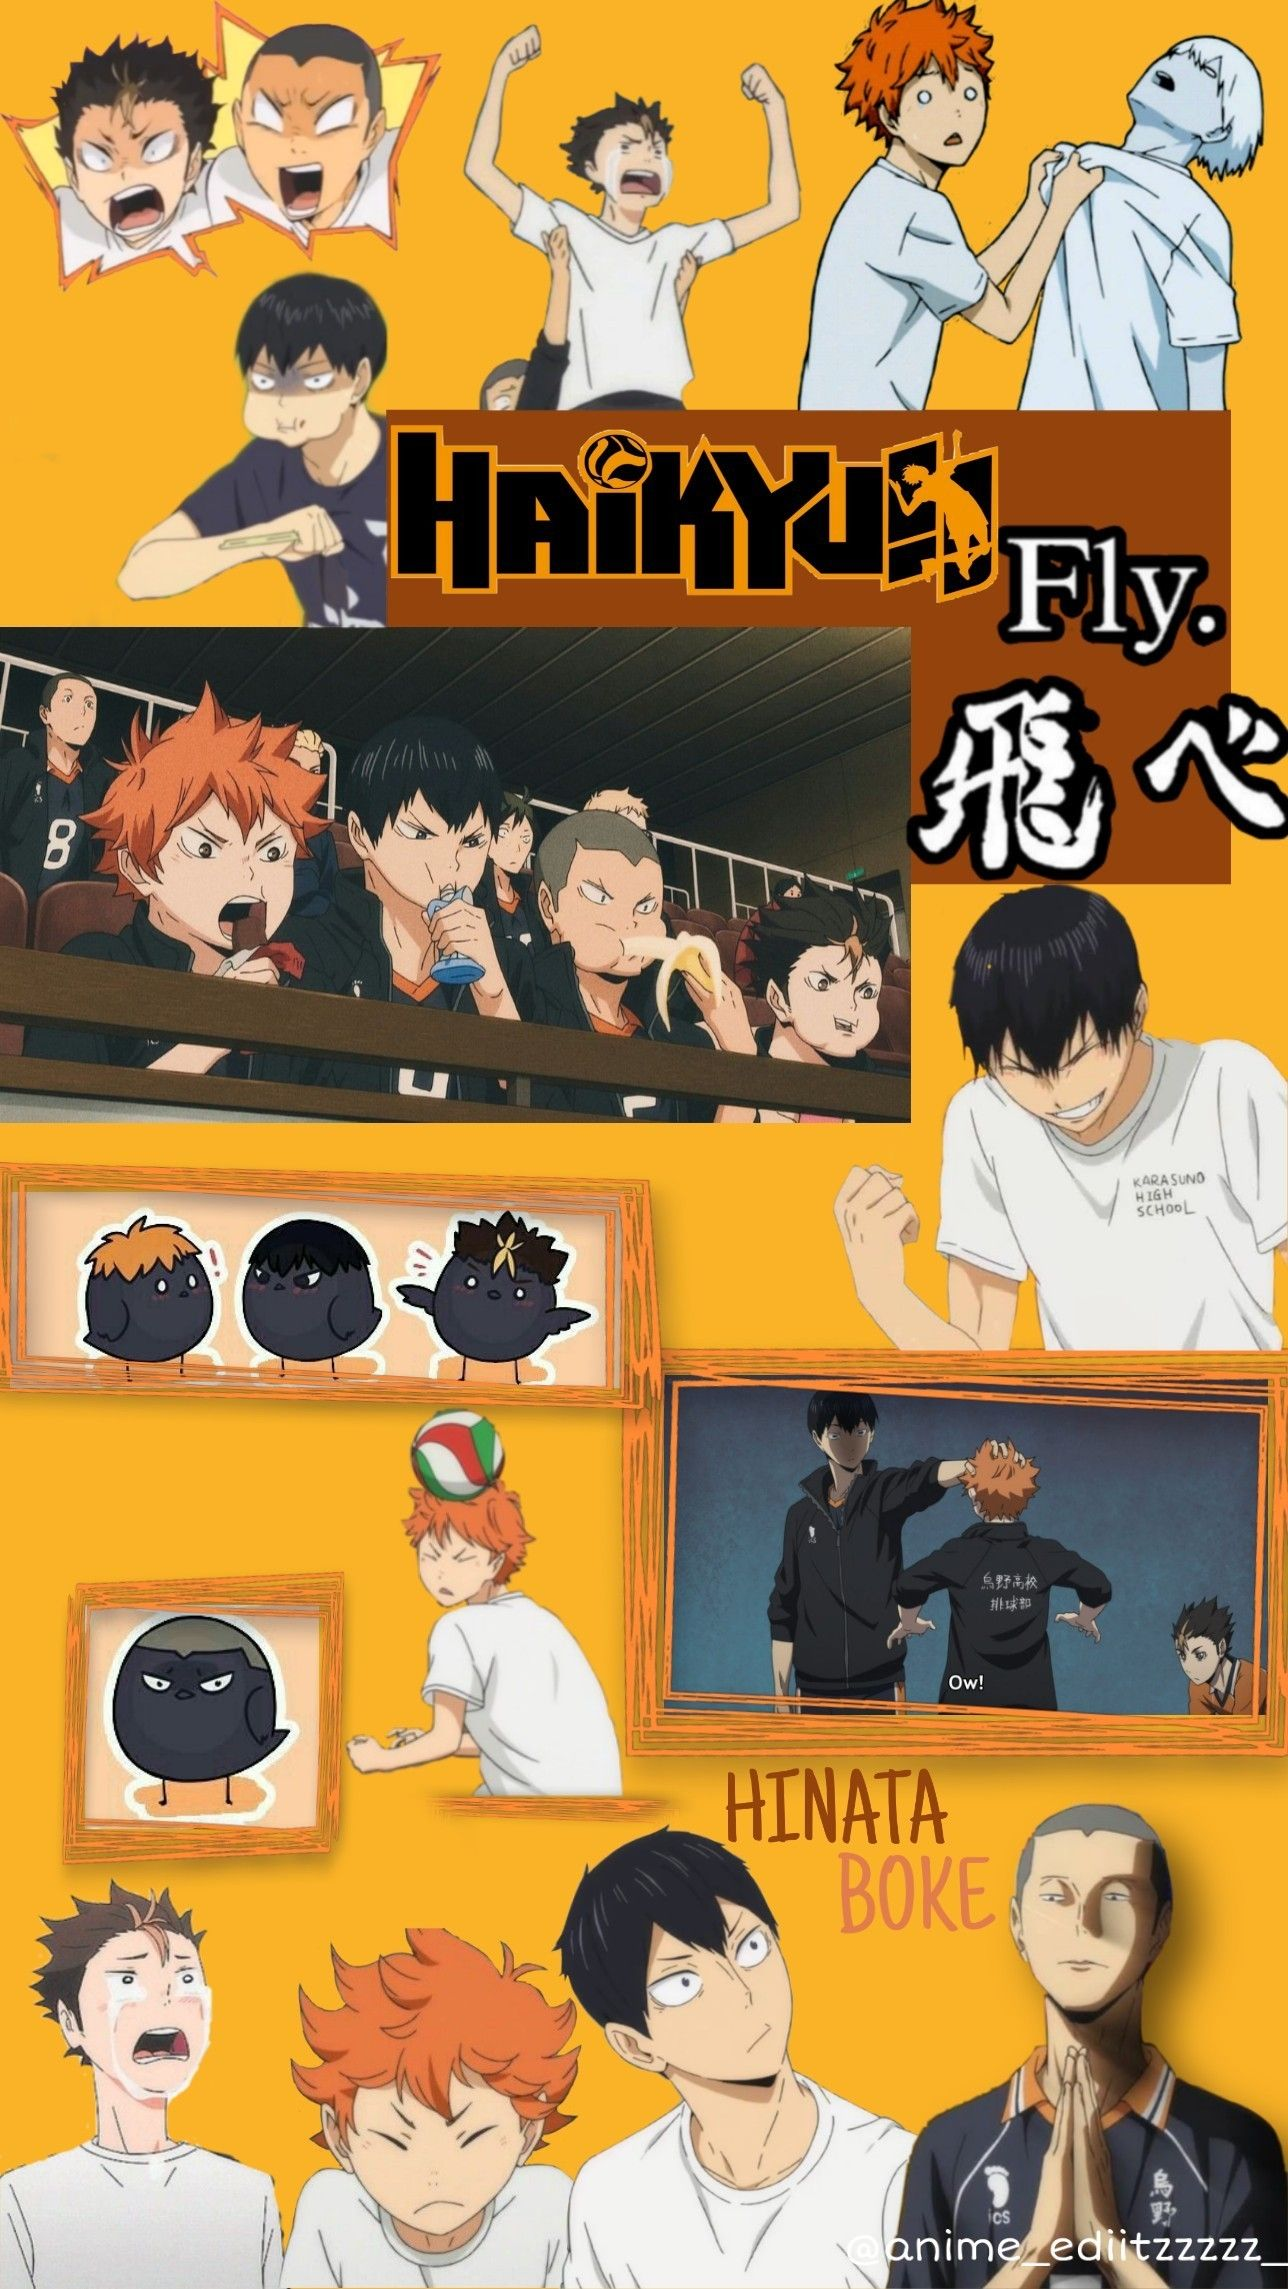 Karasuno Aesthetic Haikyuu Aesthetic In 2020 Haikyuu Wallpaper Anime Wallpaper Iphone Anime Backgrounds Wallpapers